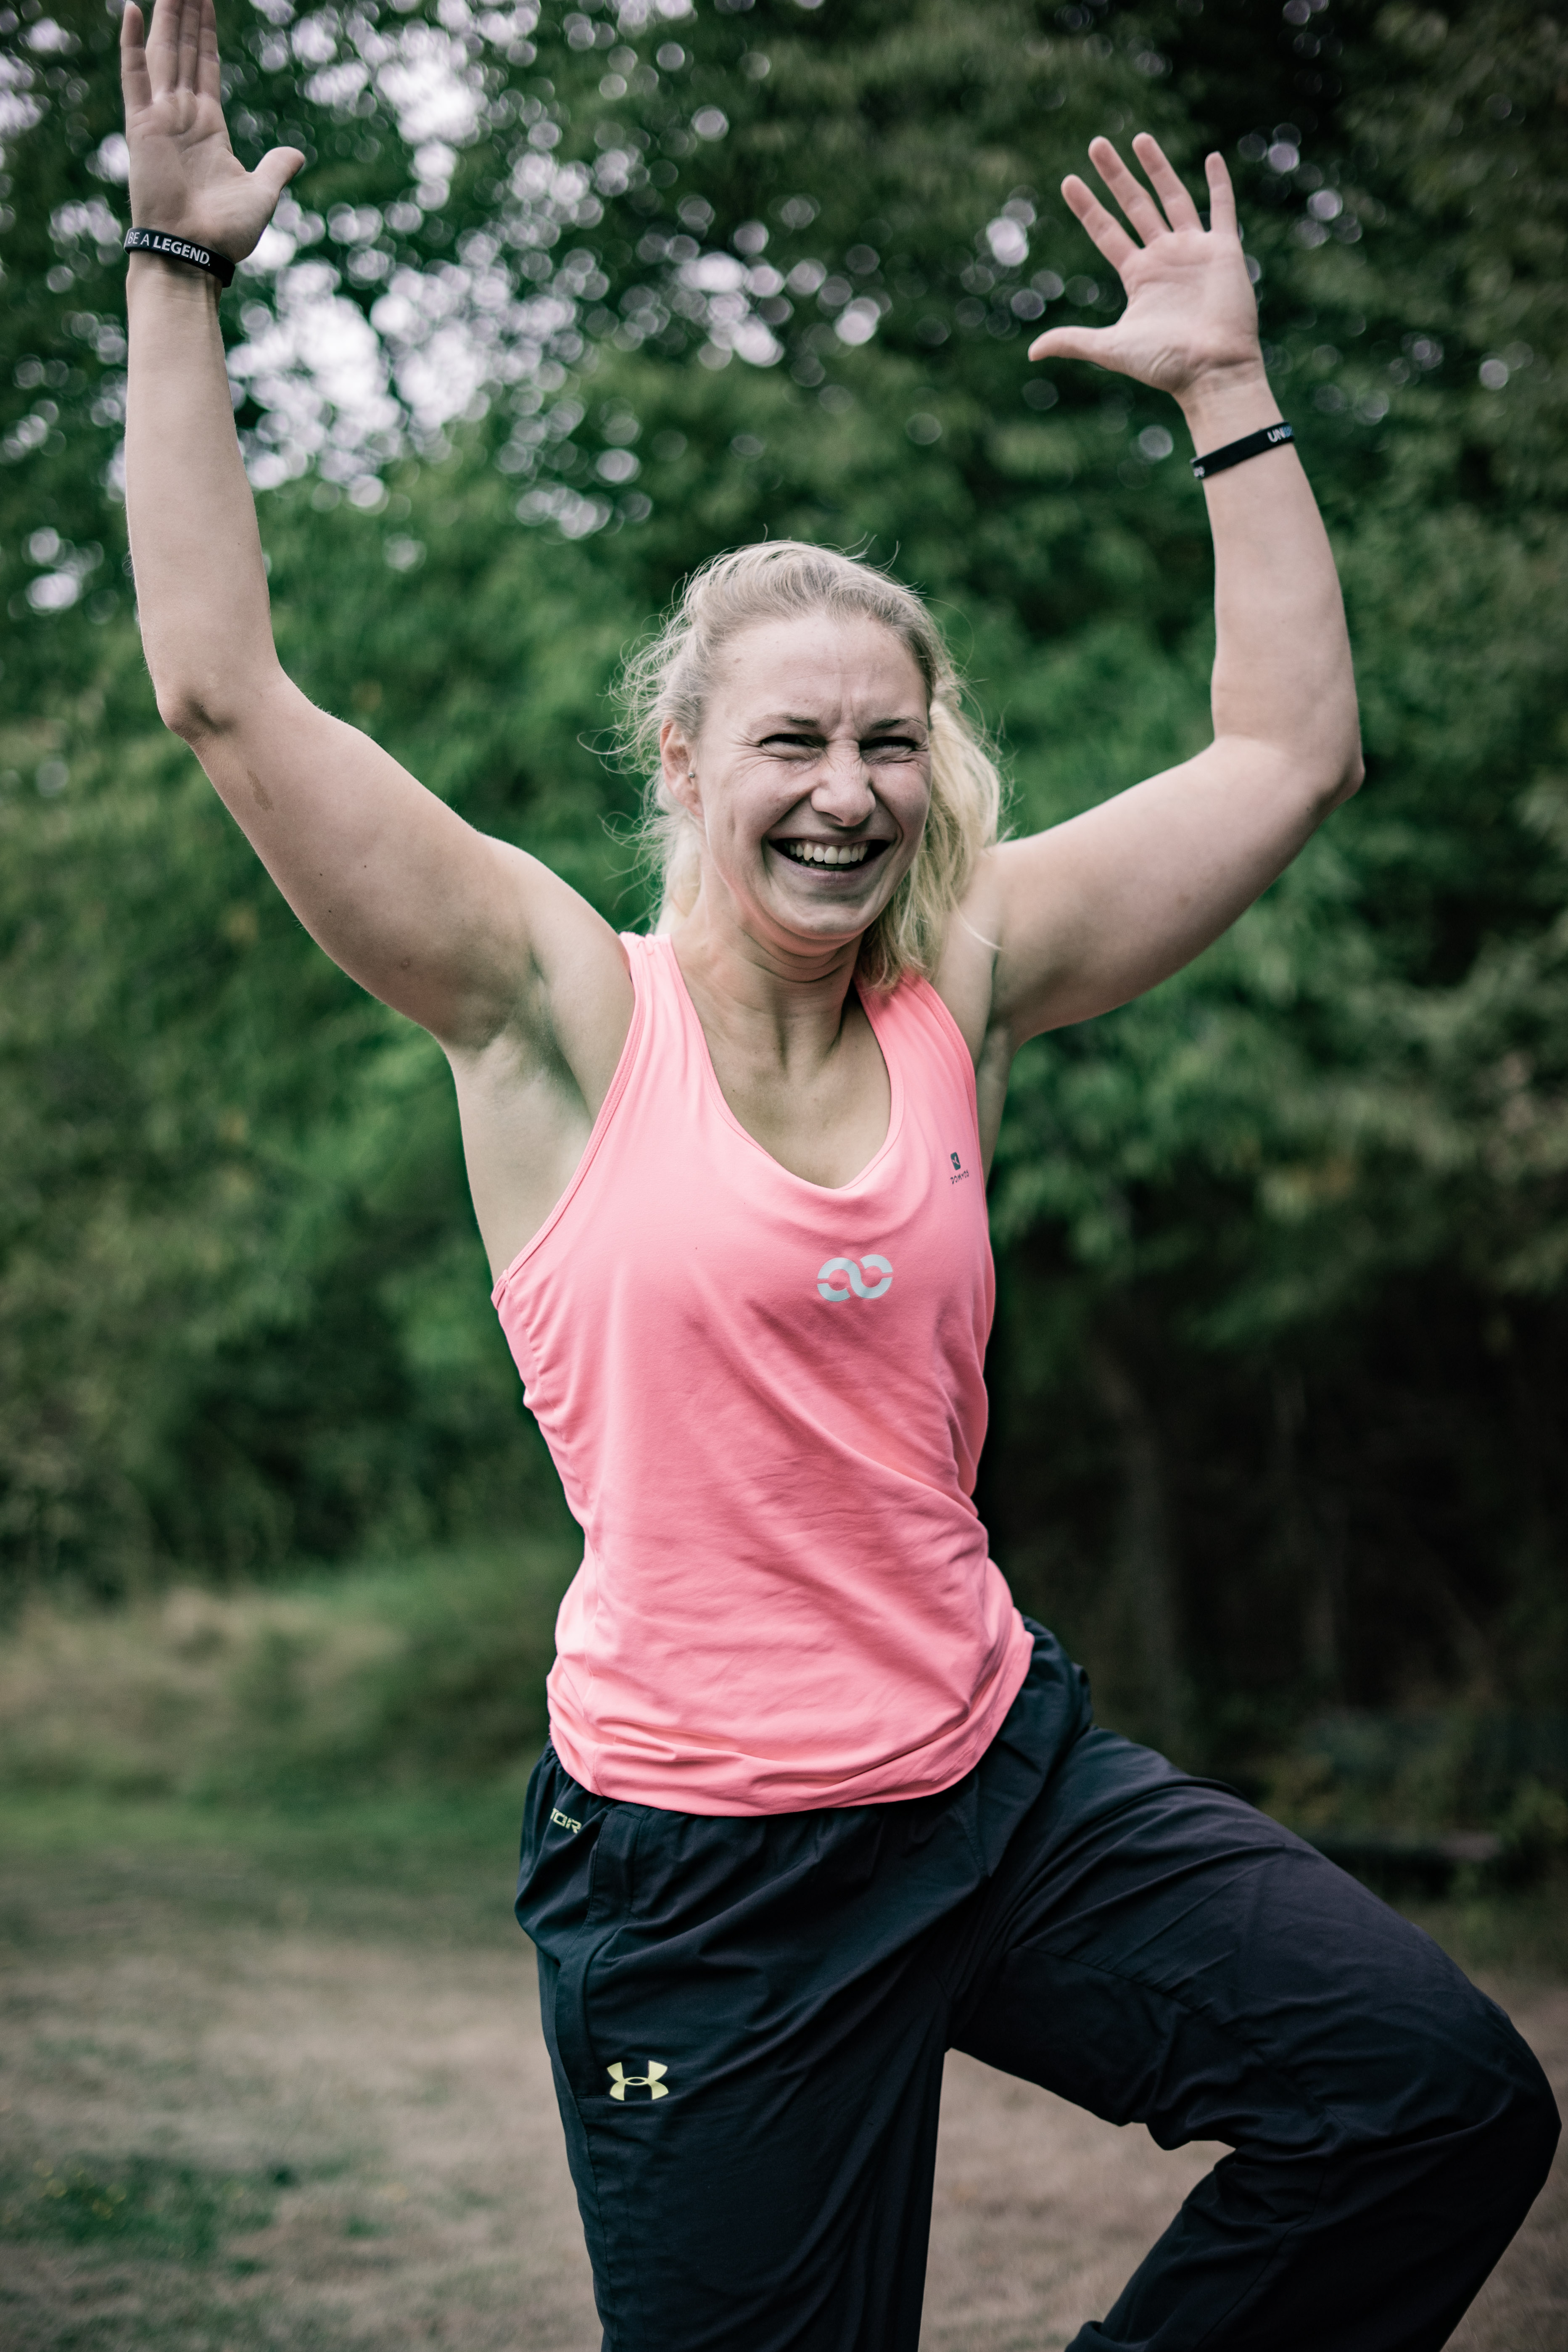 Personal Training in München bei Anja Rinne